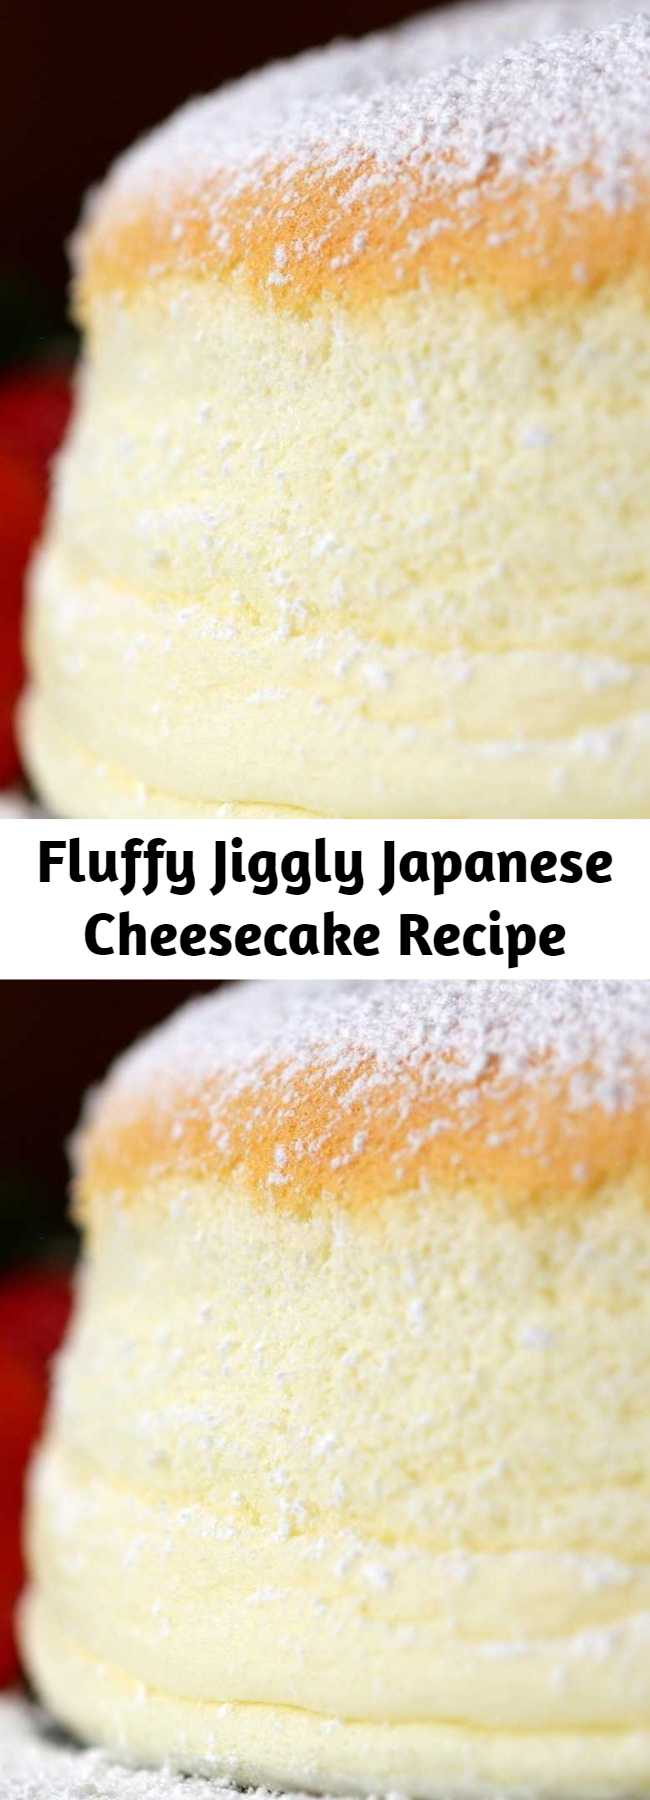 Fluffy Jiggly Japanese Cheesecake Recipe - Learn to master this Japanese classic dish in your own home! Get ready to whip a lot of egg whites to create this exciting jiggly texture as well as layer in flavors like cream cheese.